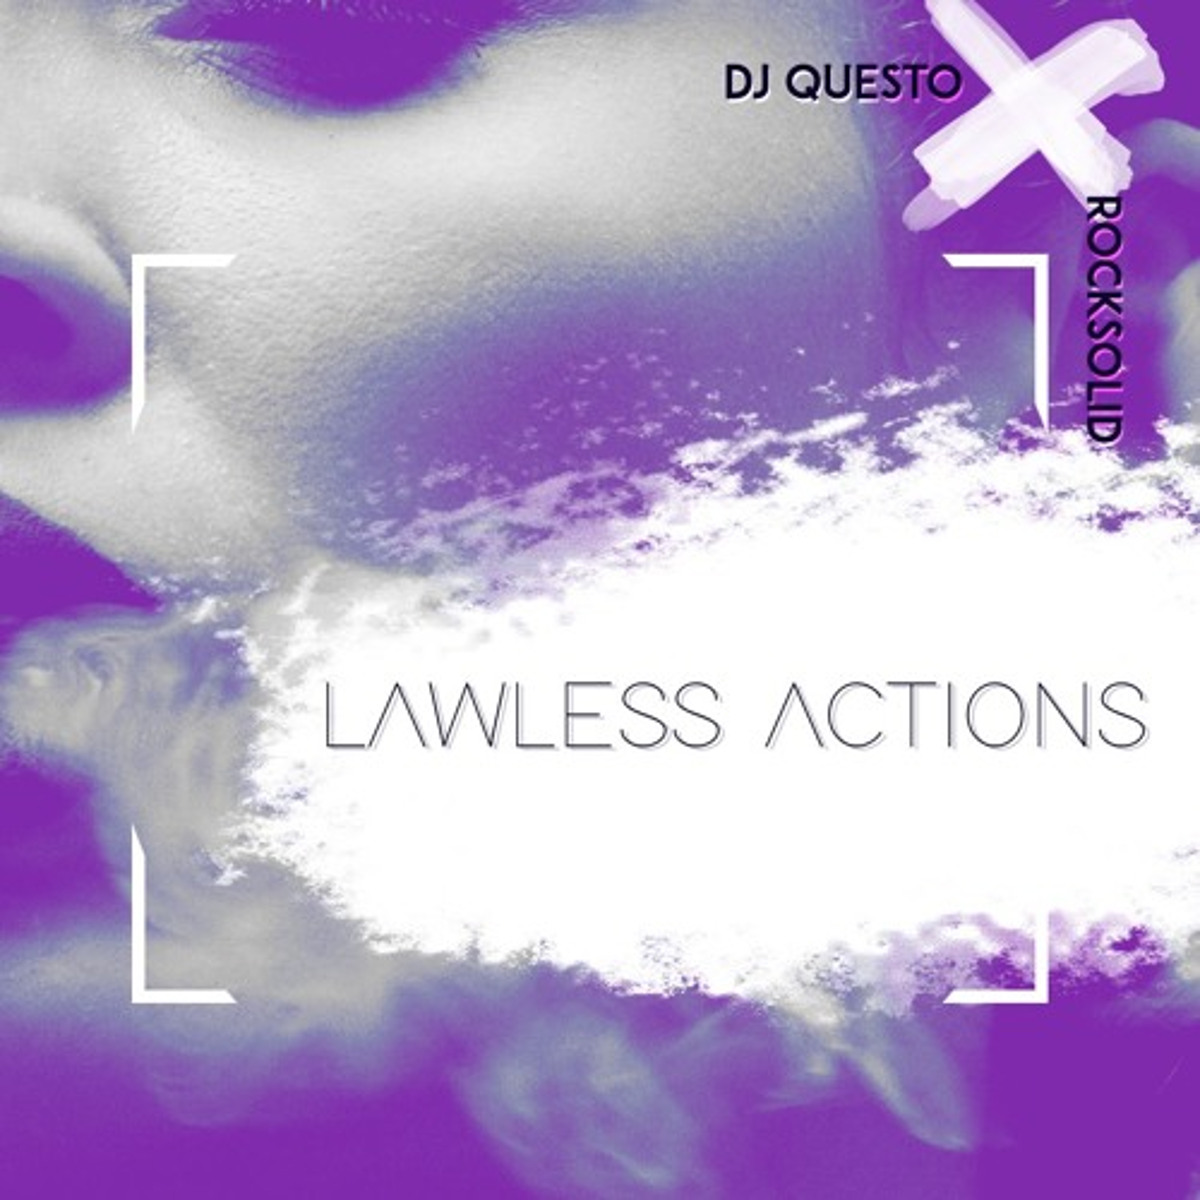 Dj Questo Rocksolid Lawless Actions - Dj Questo Ft. Rocksolid – Lawless Actions